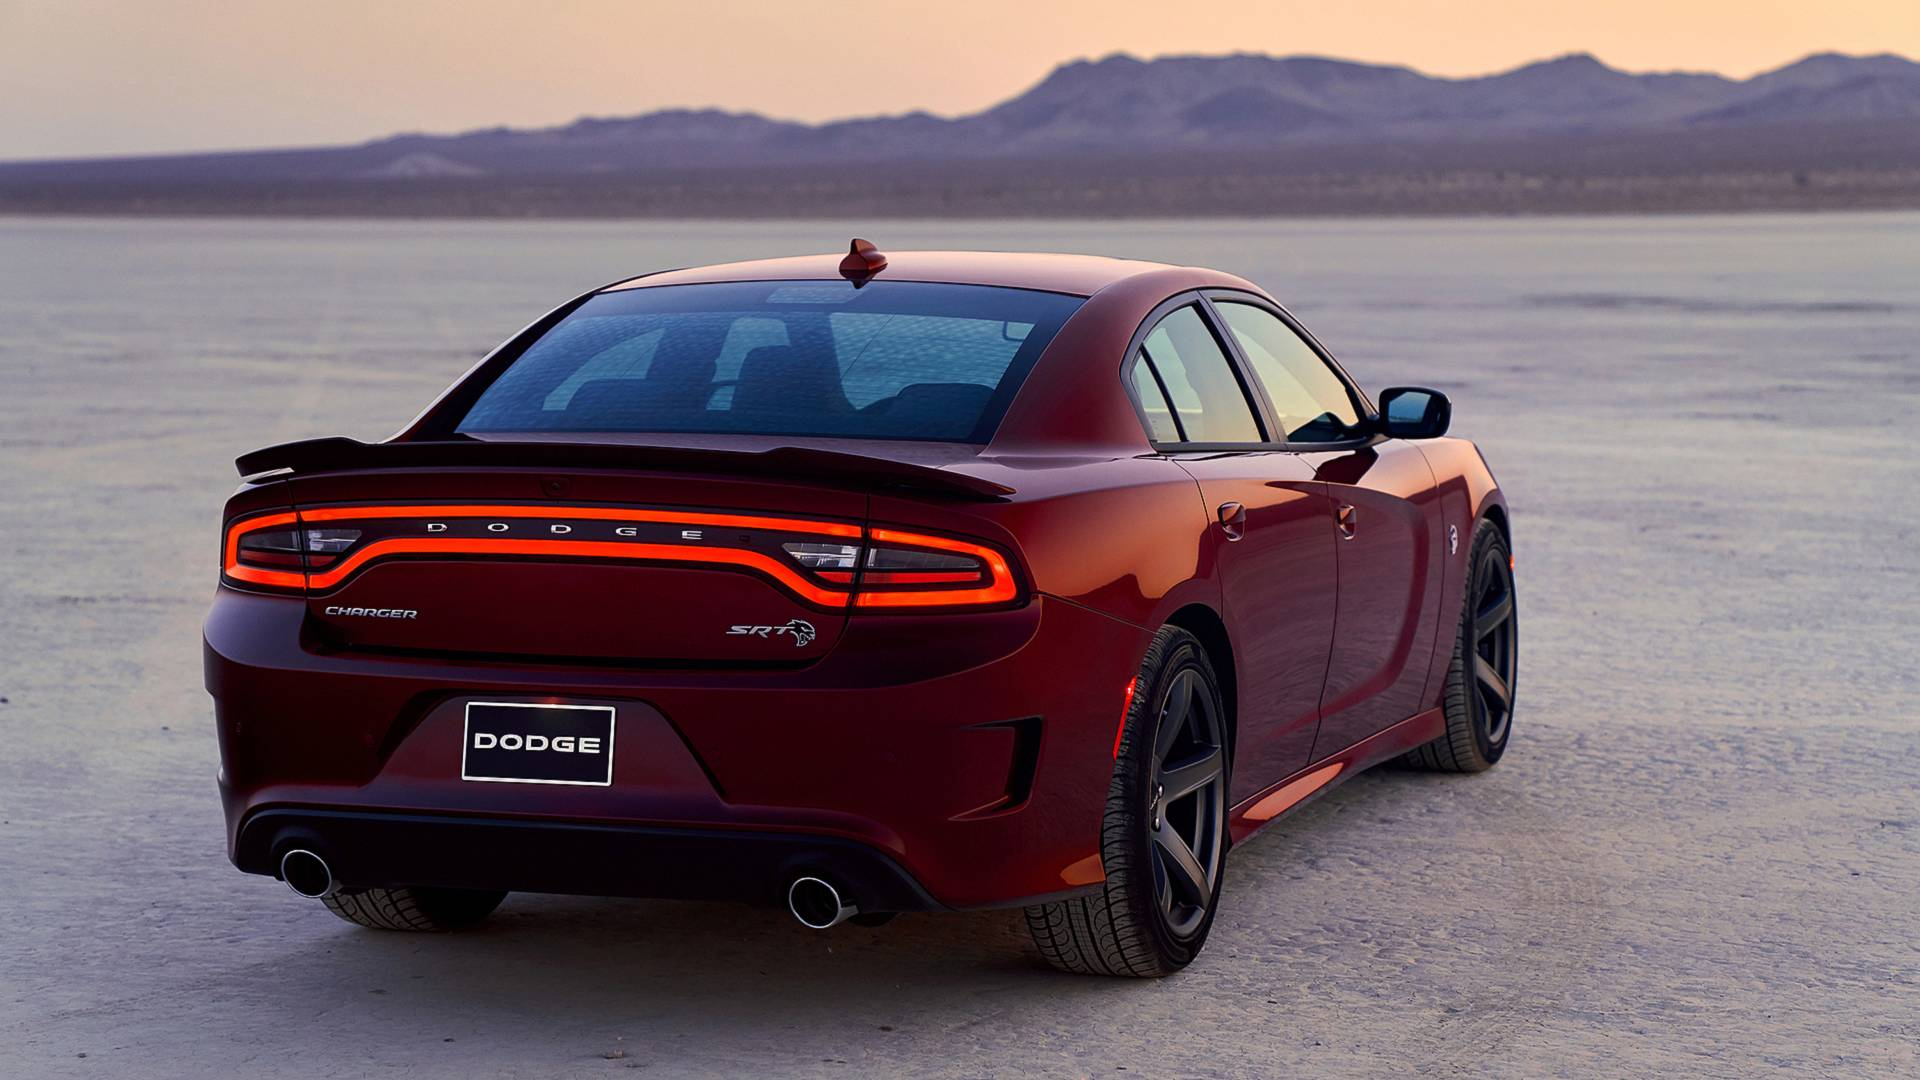 Dodge Charger Srt >> 2019 Dodge Charger Srt Hellcat Gets Some Goodies From The Demon